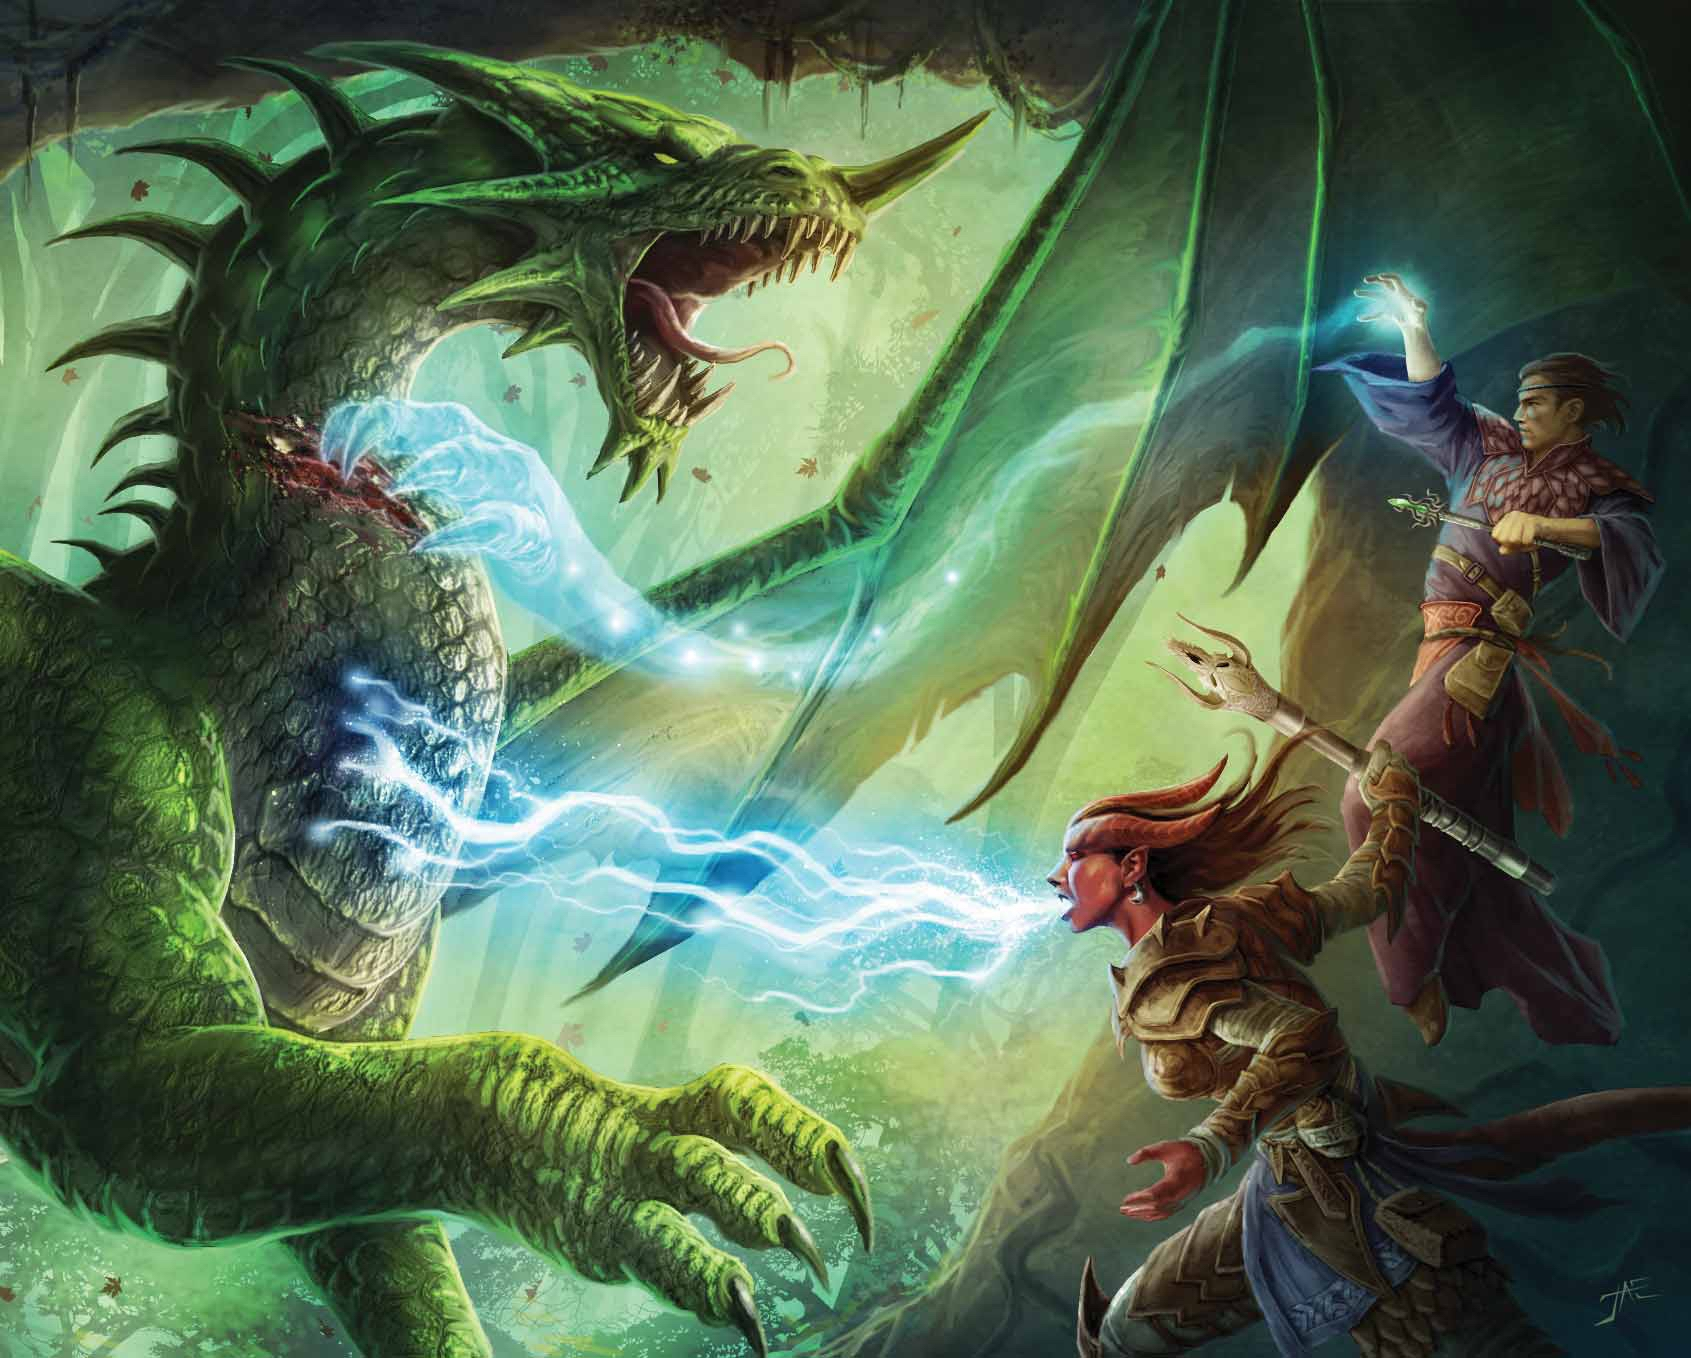 green dragon Tiefling contro un drago verde - by Jason A. Engle Dragon Magazine #369 (2008-11) © Wizards of the Coast & Hasbro